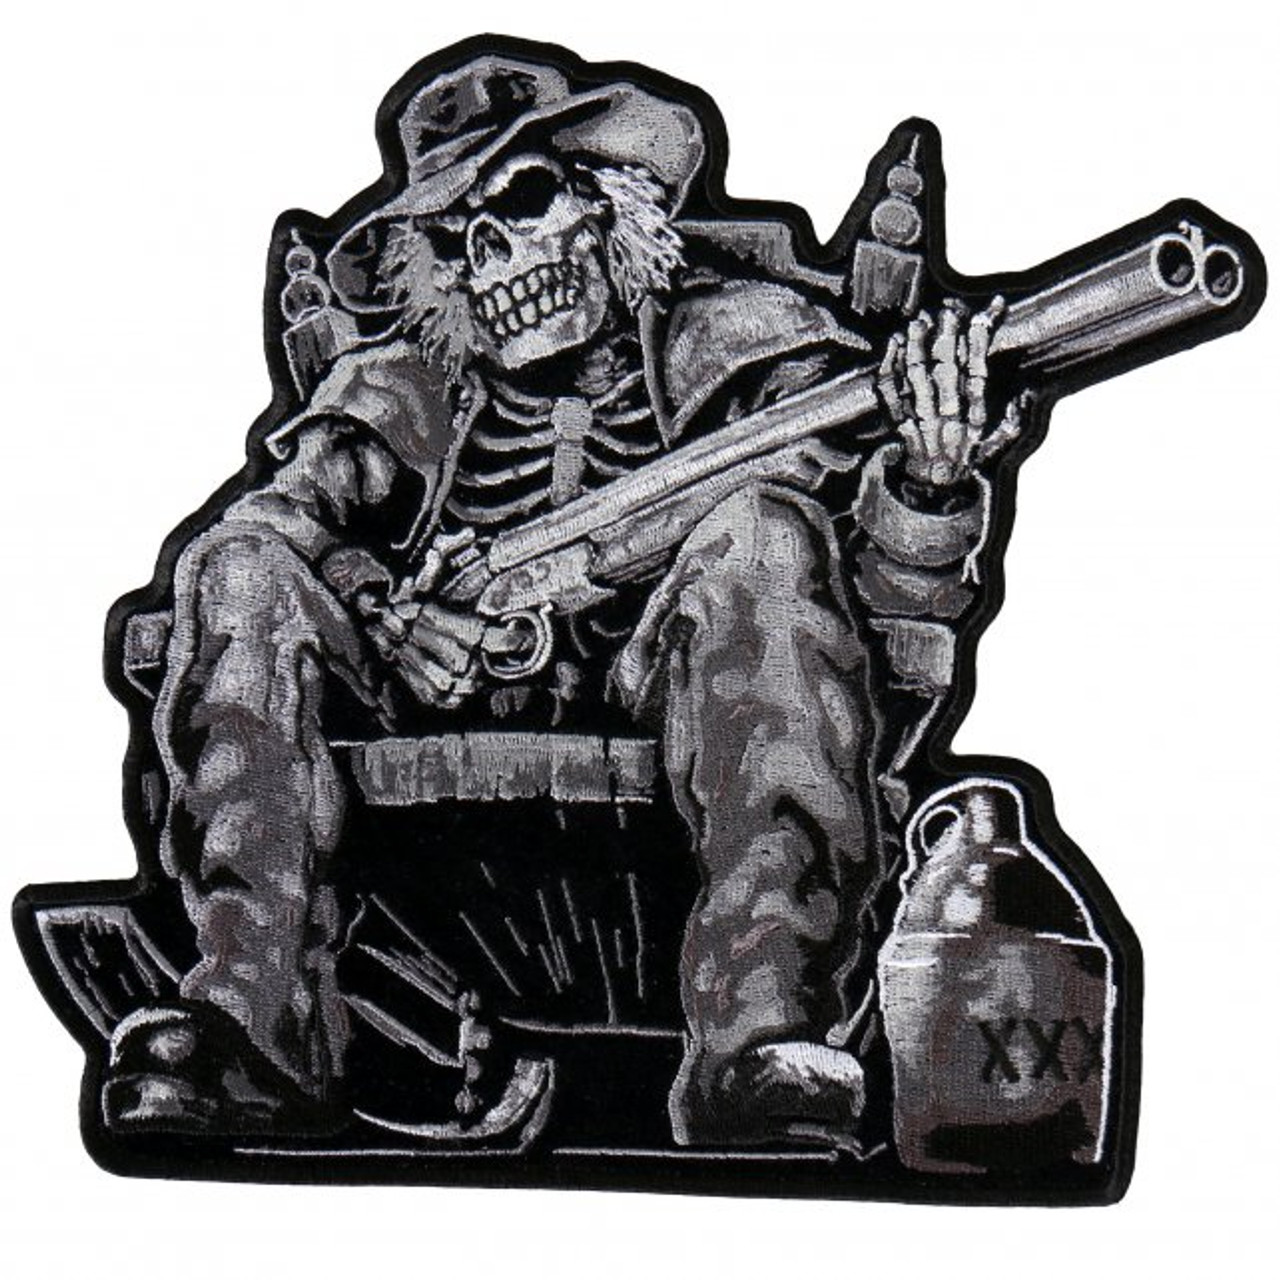 Full Throttle See God Riding Skeleton Patch Biker Back Patches